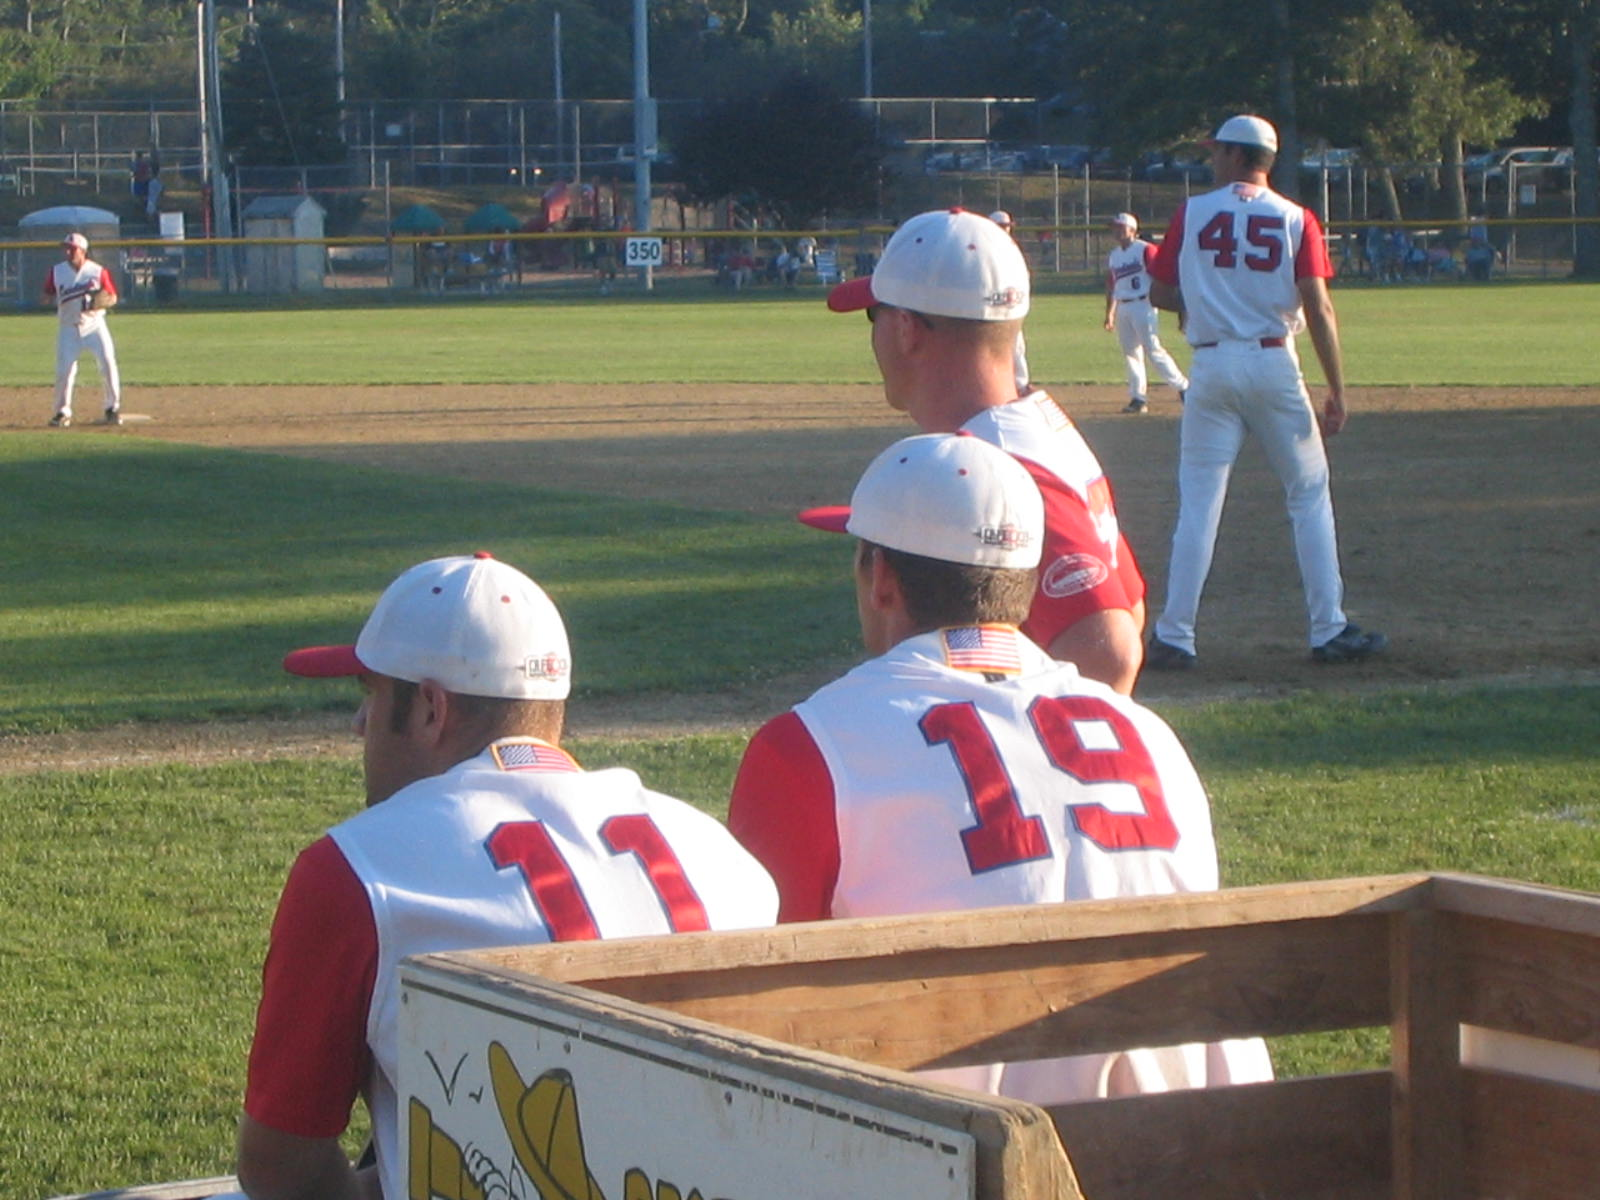 Orleans players preparing to take the field in Game One of the eastern playoffs.